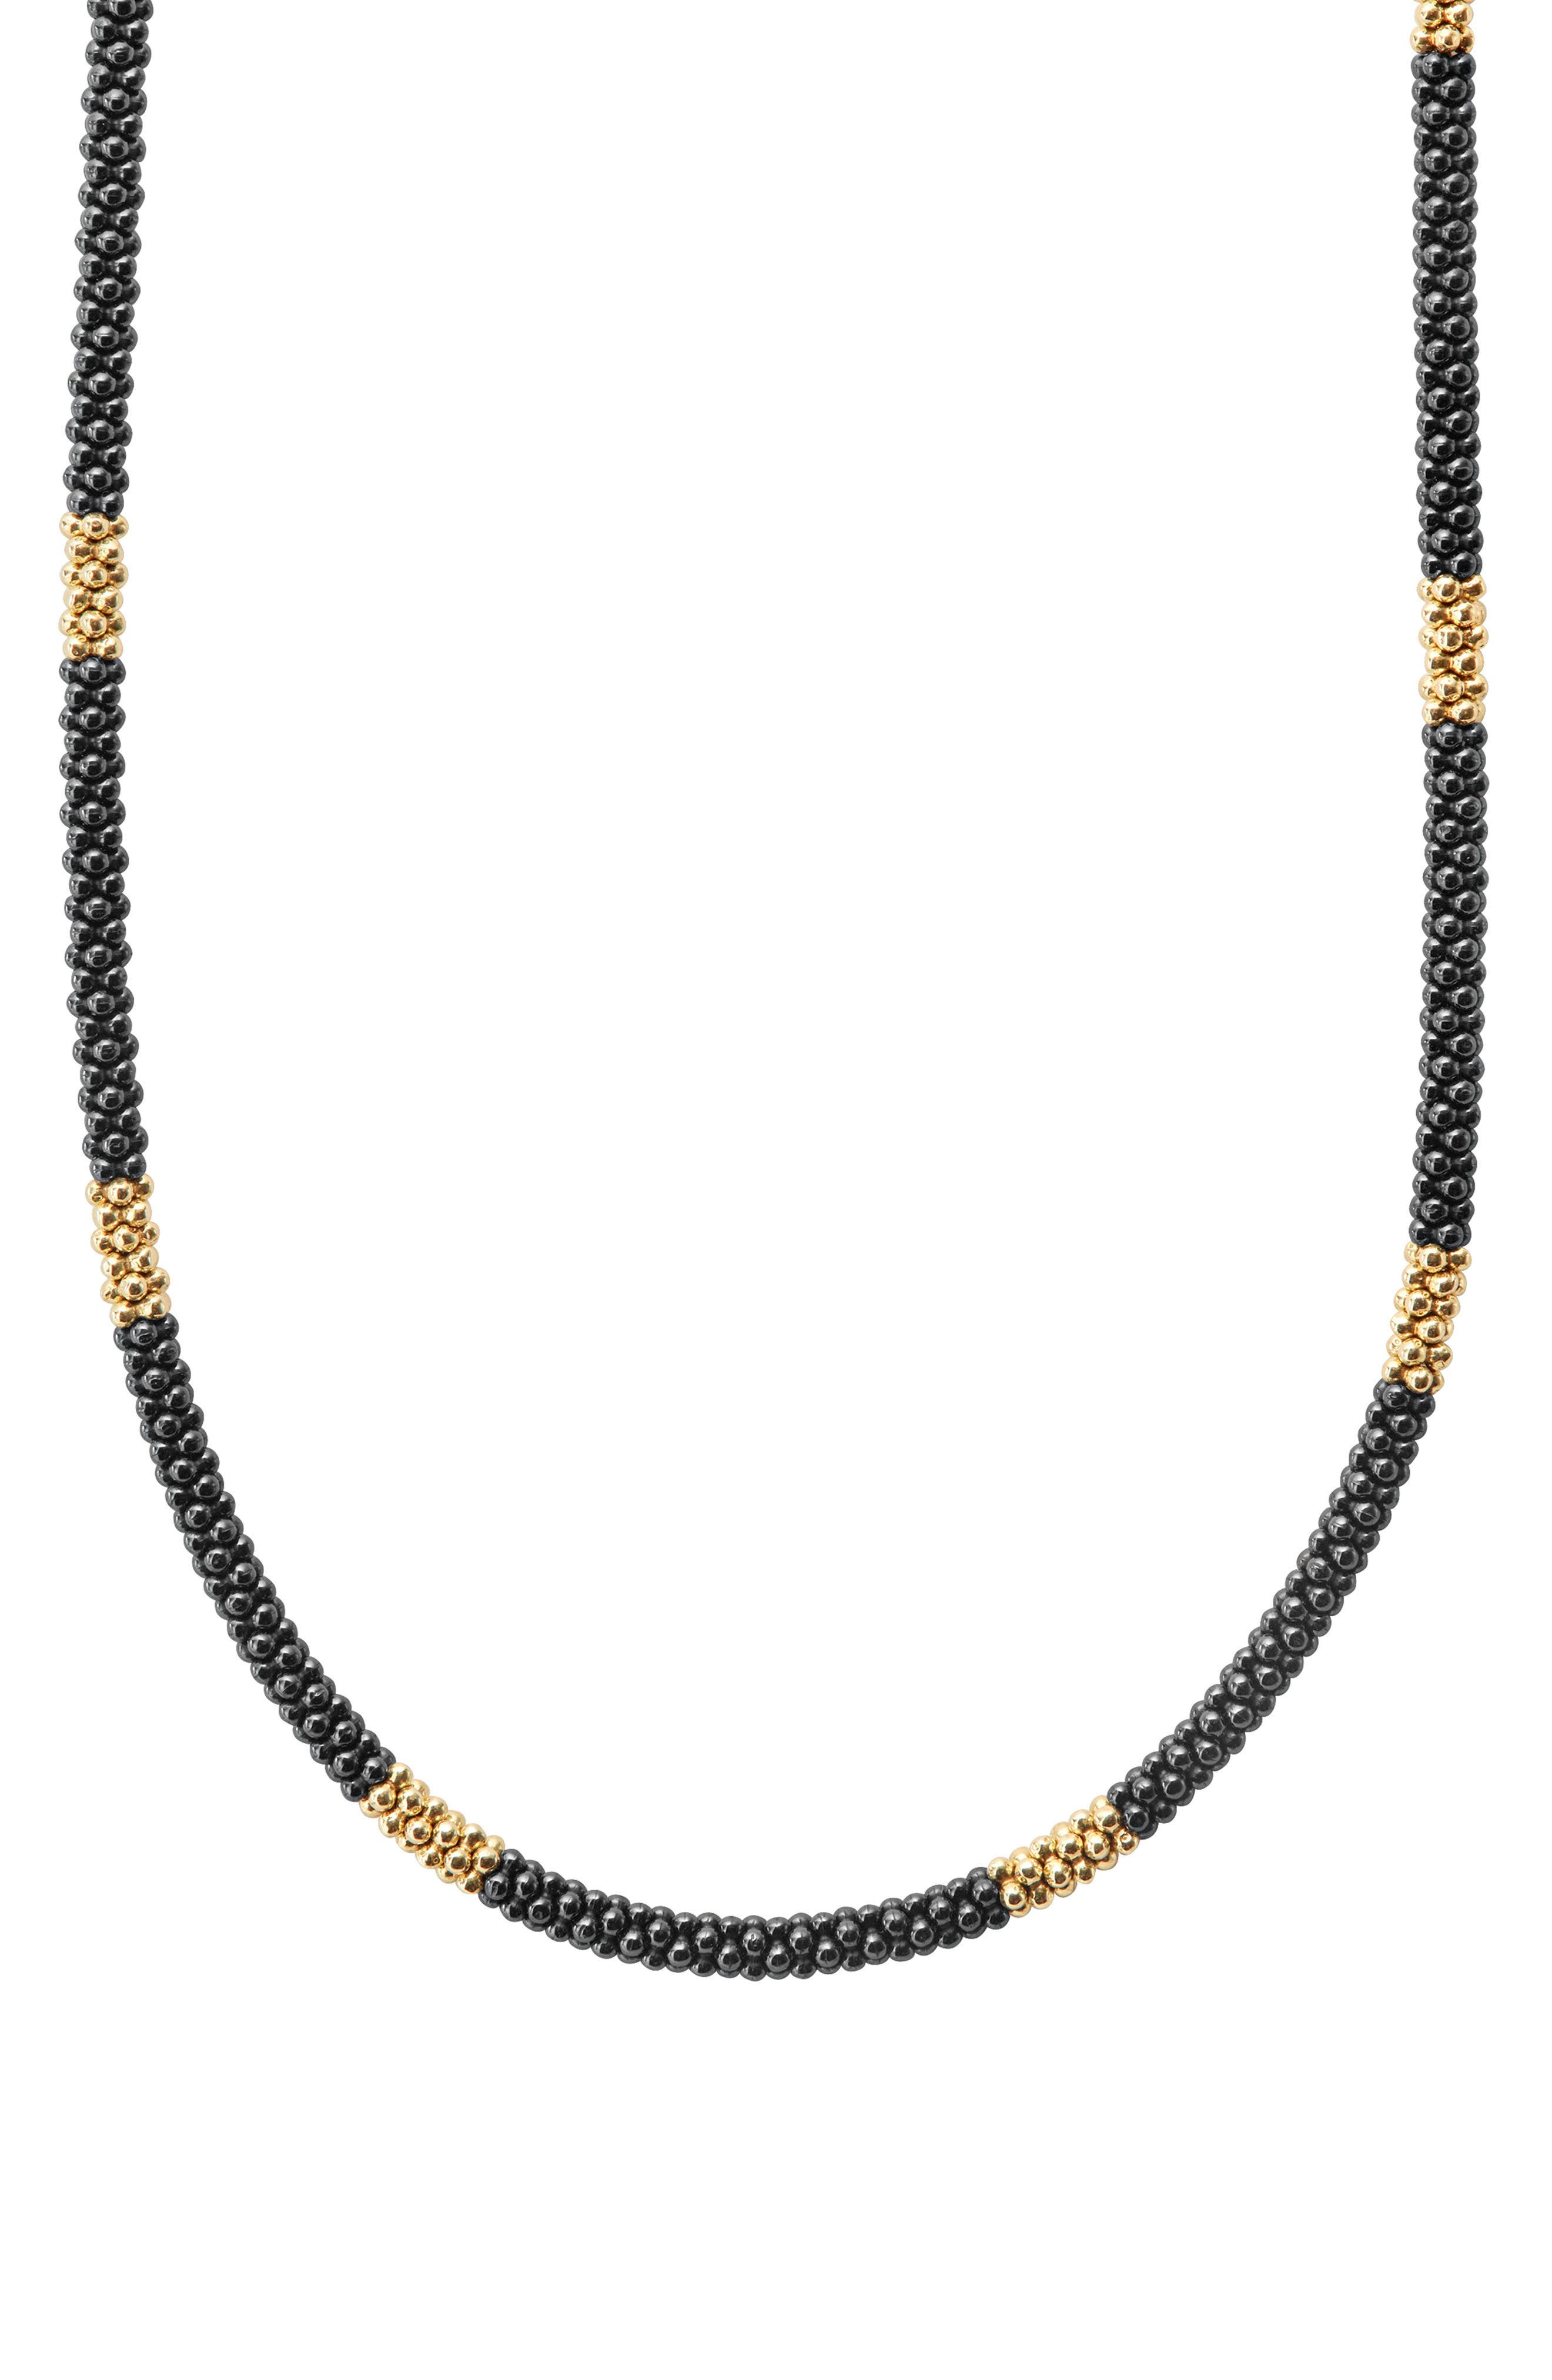 Gold & Black Caviar Rope Necklace,                             Alternate thumbnail 5, color,                             GOLD